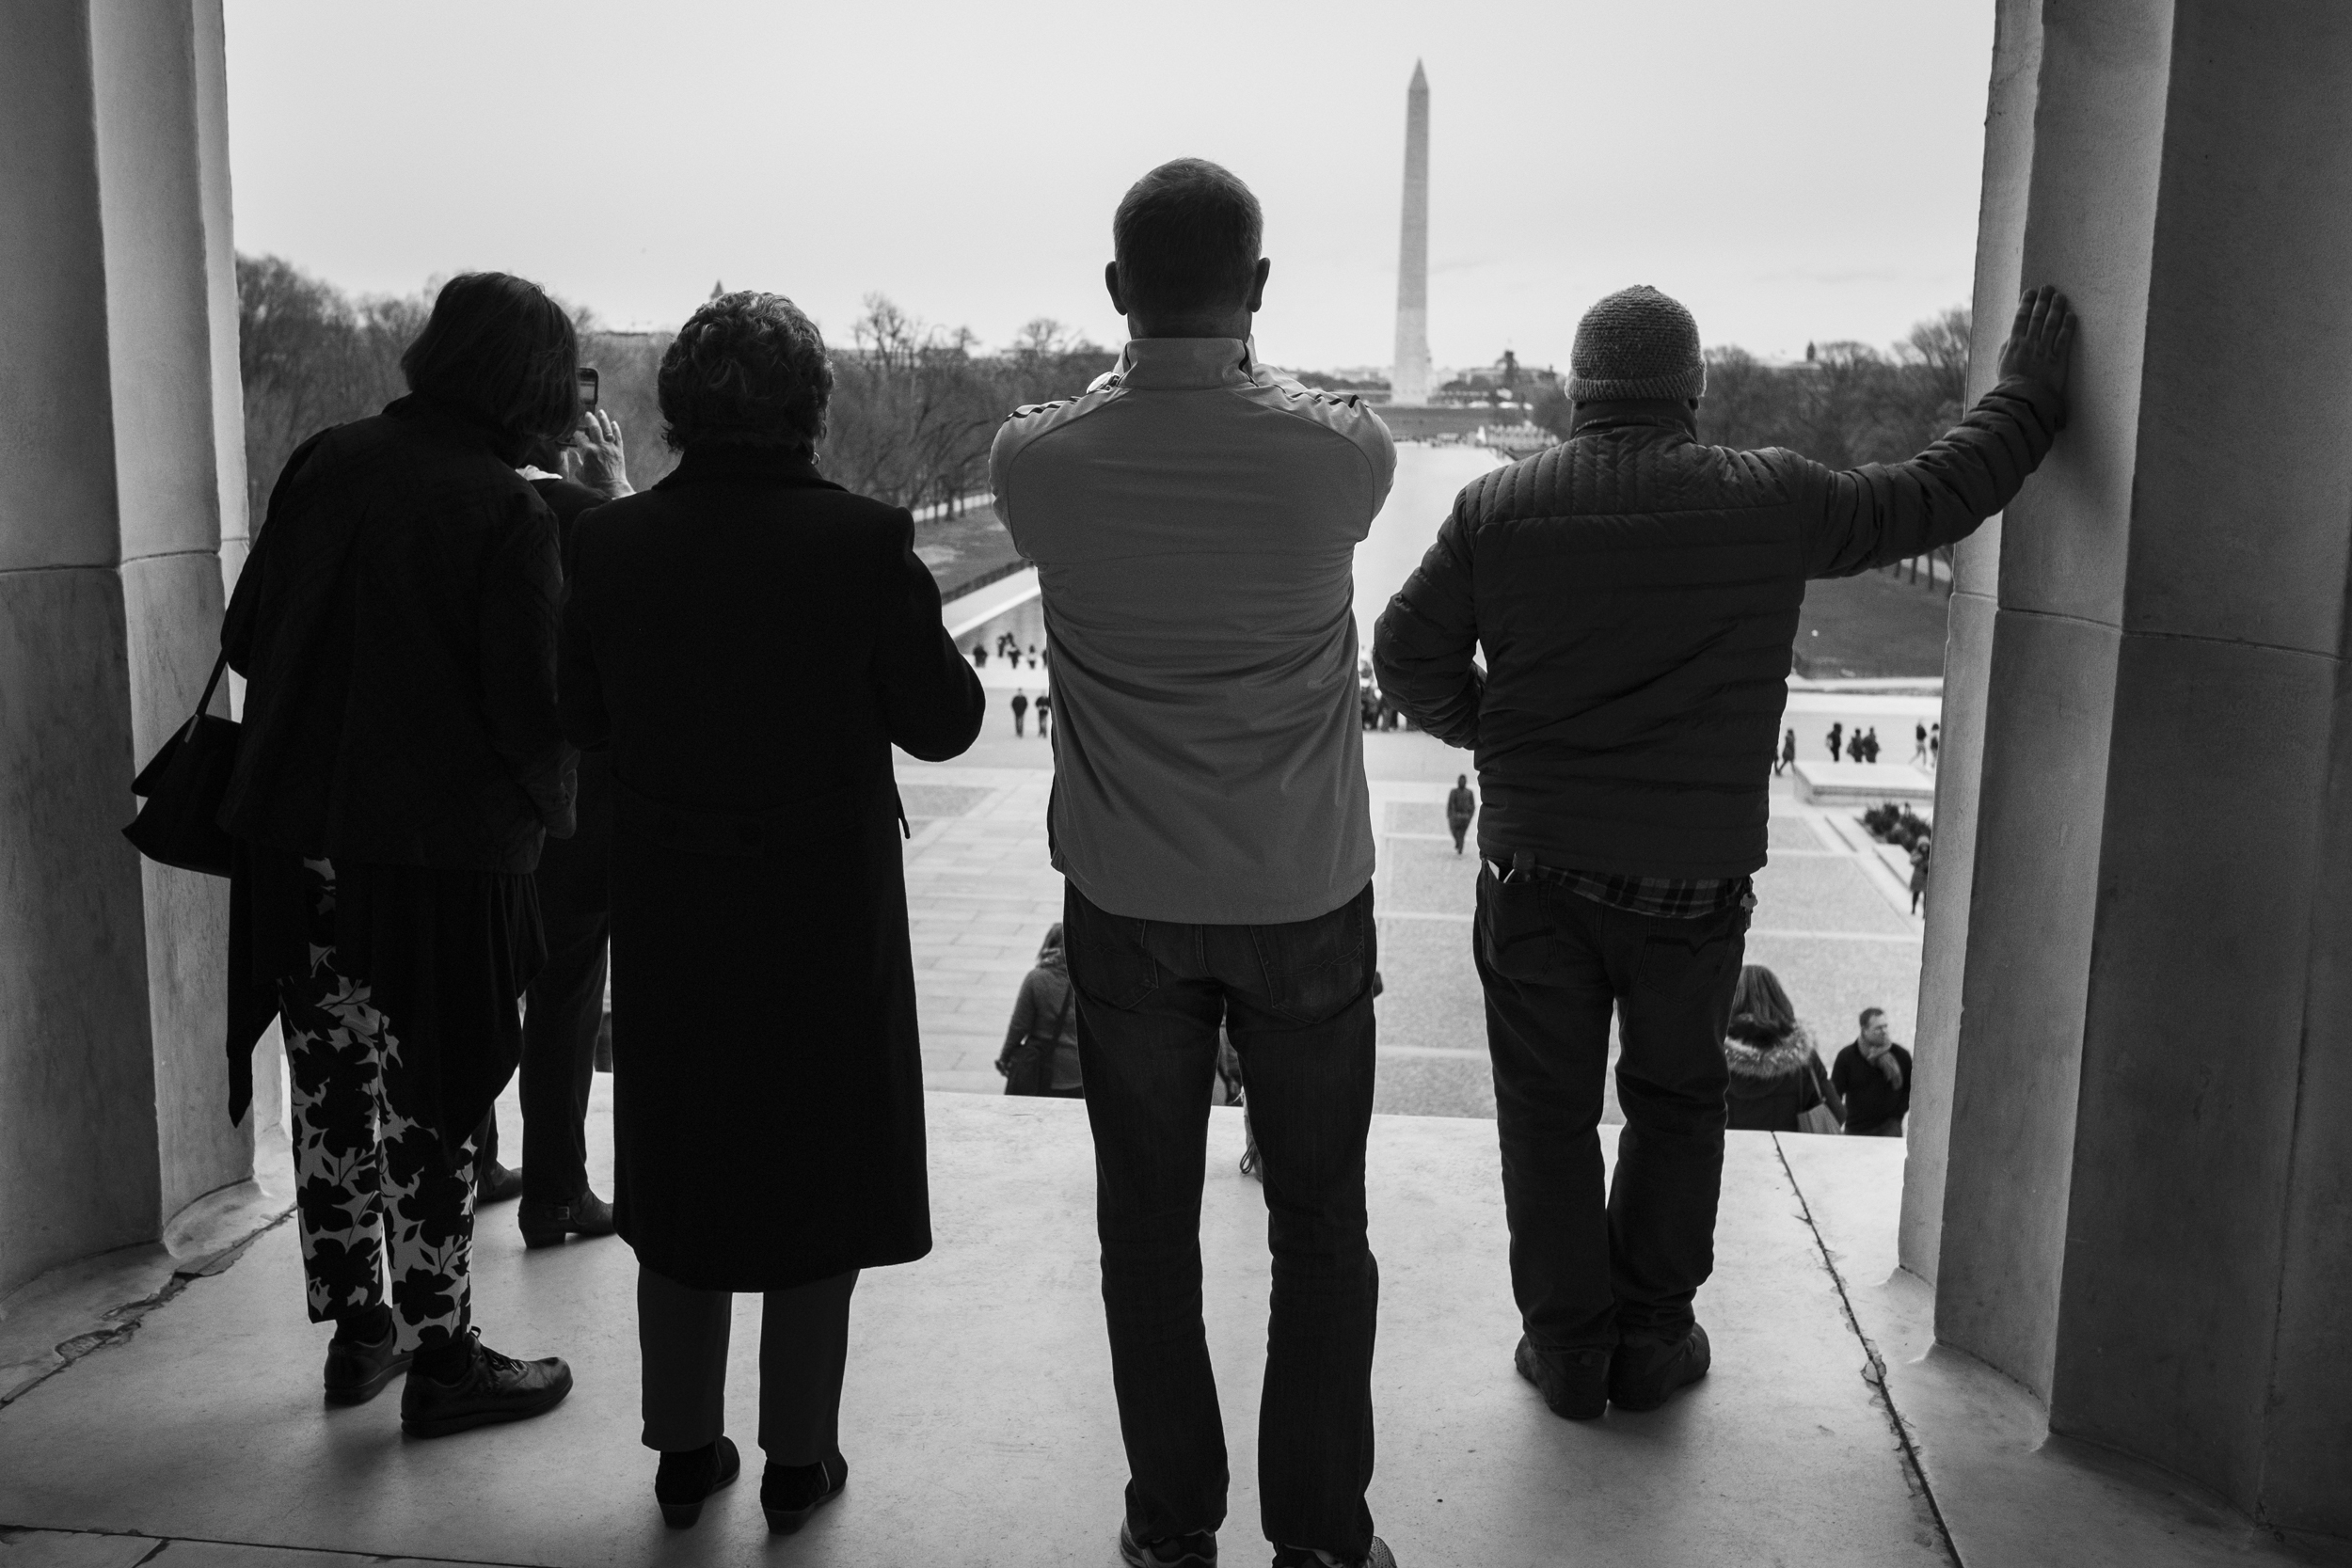 Tourists take photos of the National Mall.